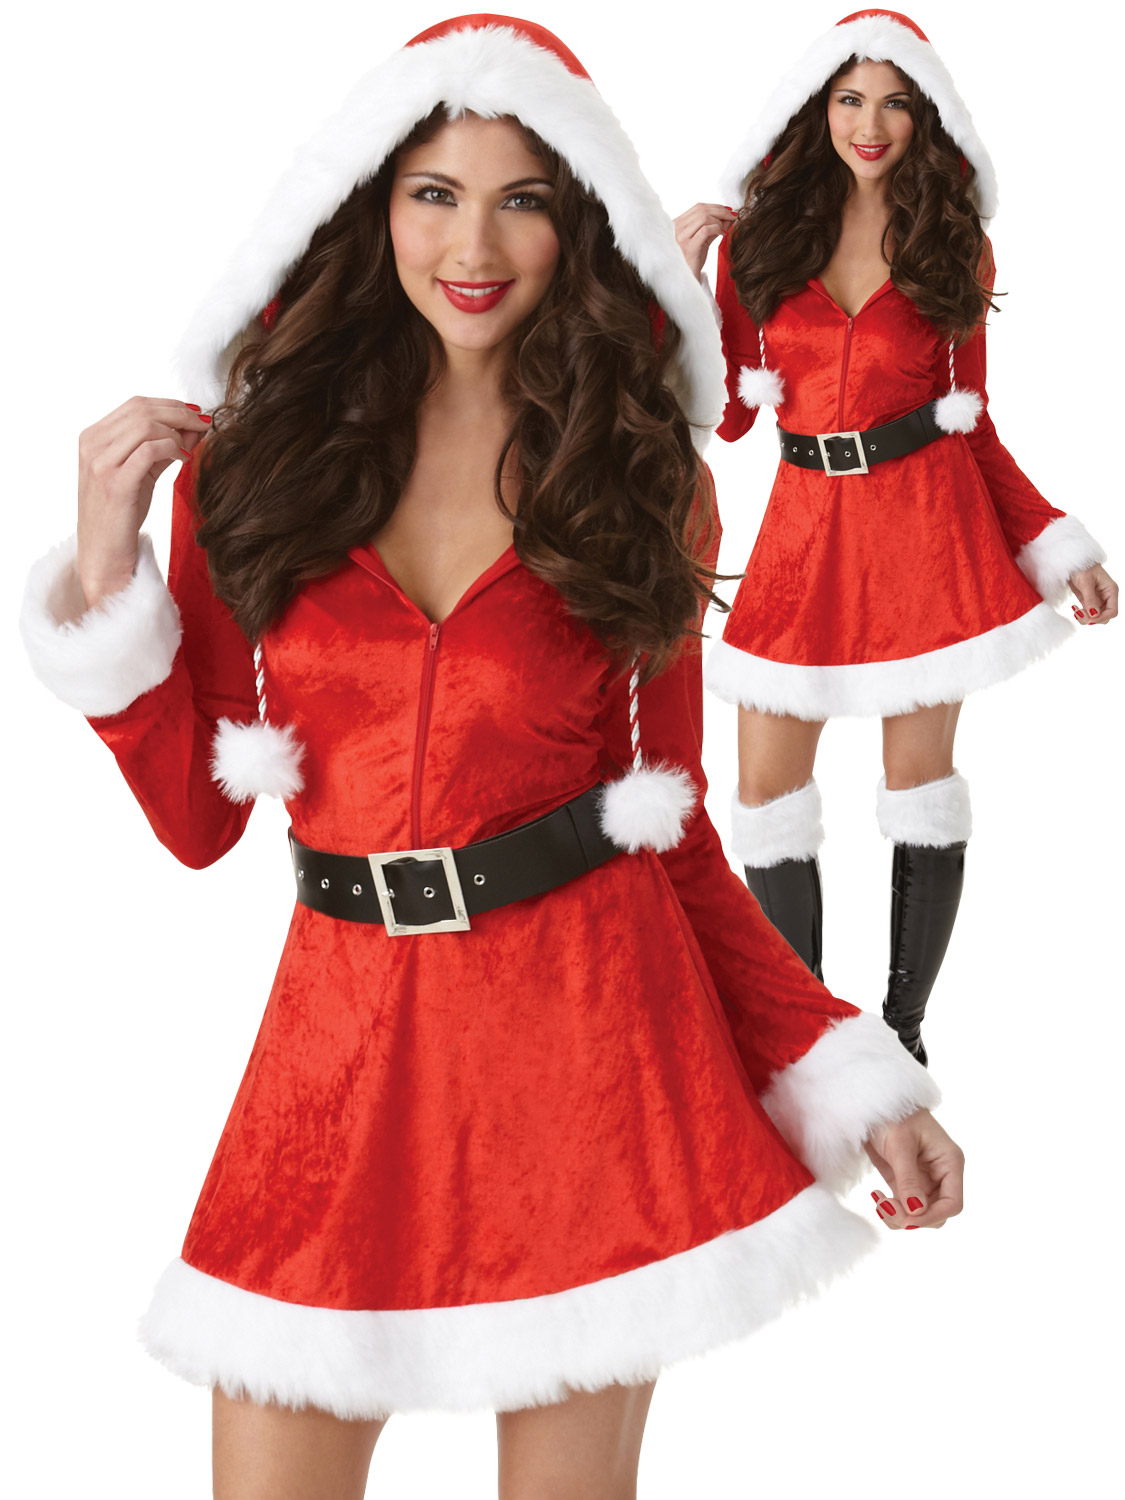 Ladies sexy santa claus costume adults mrs father christmas fancy transform yourself in to a sexy mrs claus with this ladies sassy santa costume ideal if you are dressing up for a christmas party solutioingenieria Images